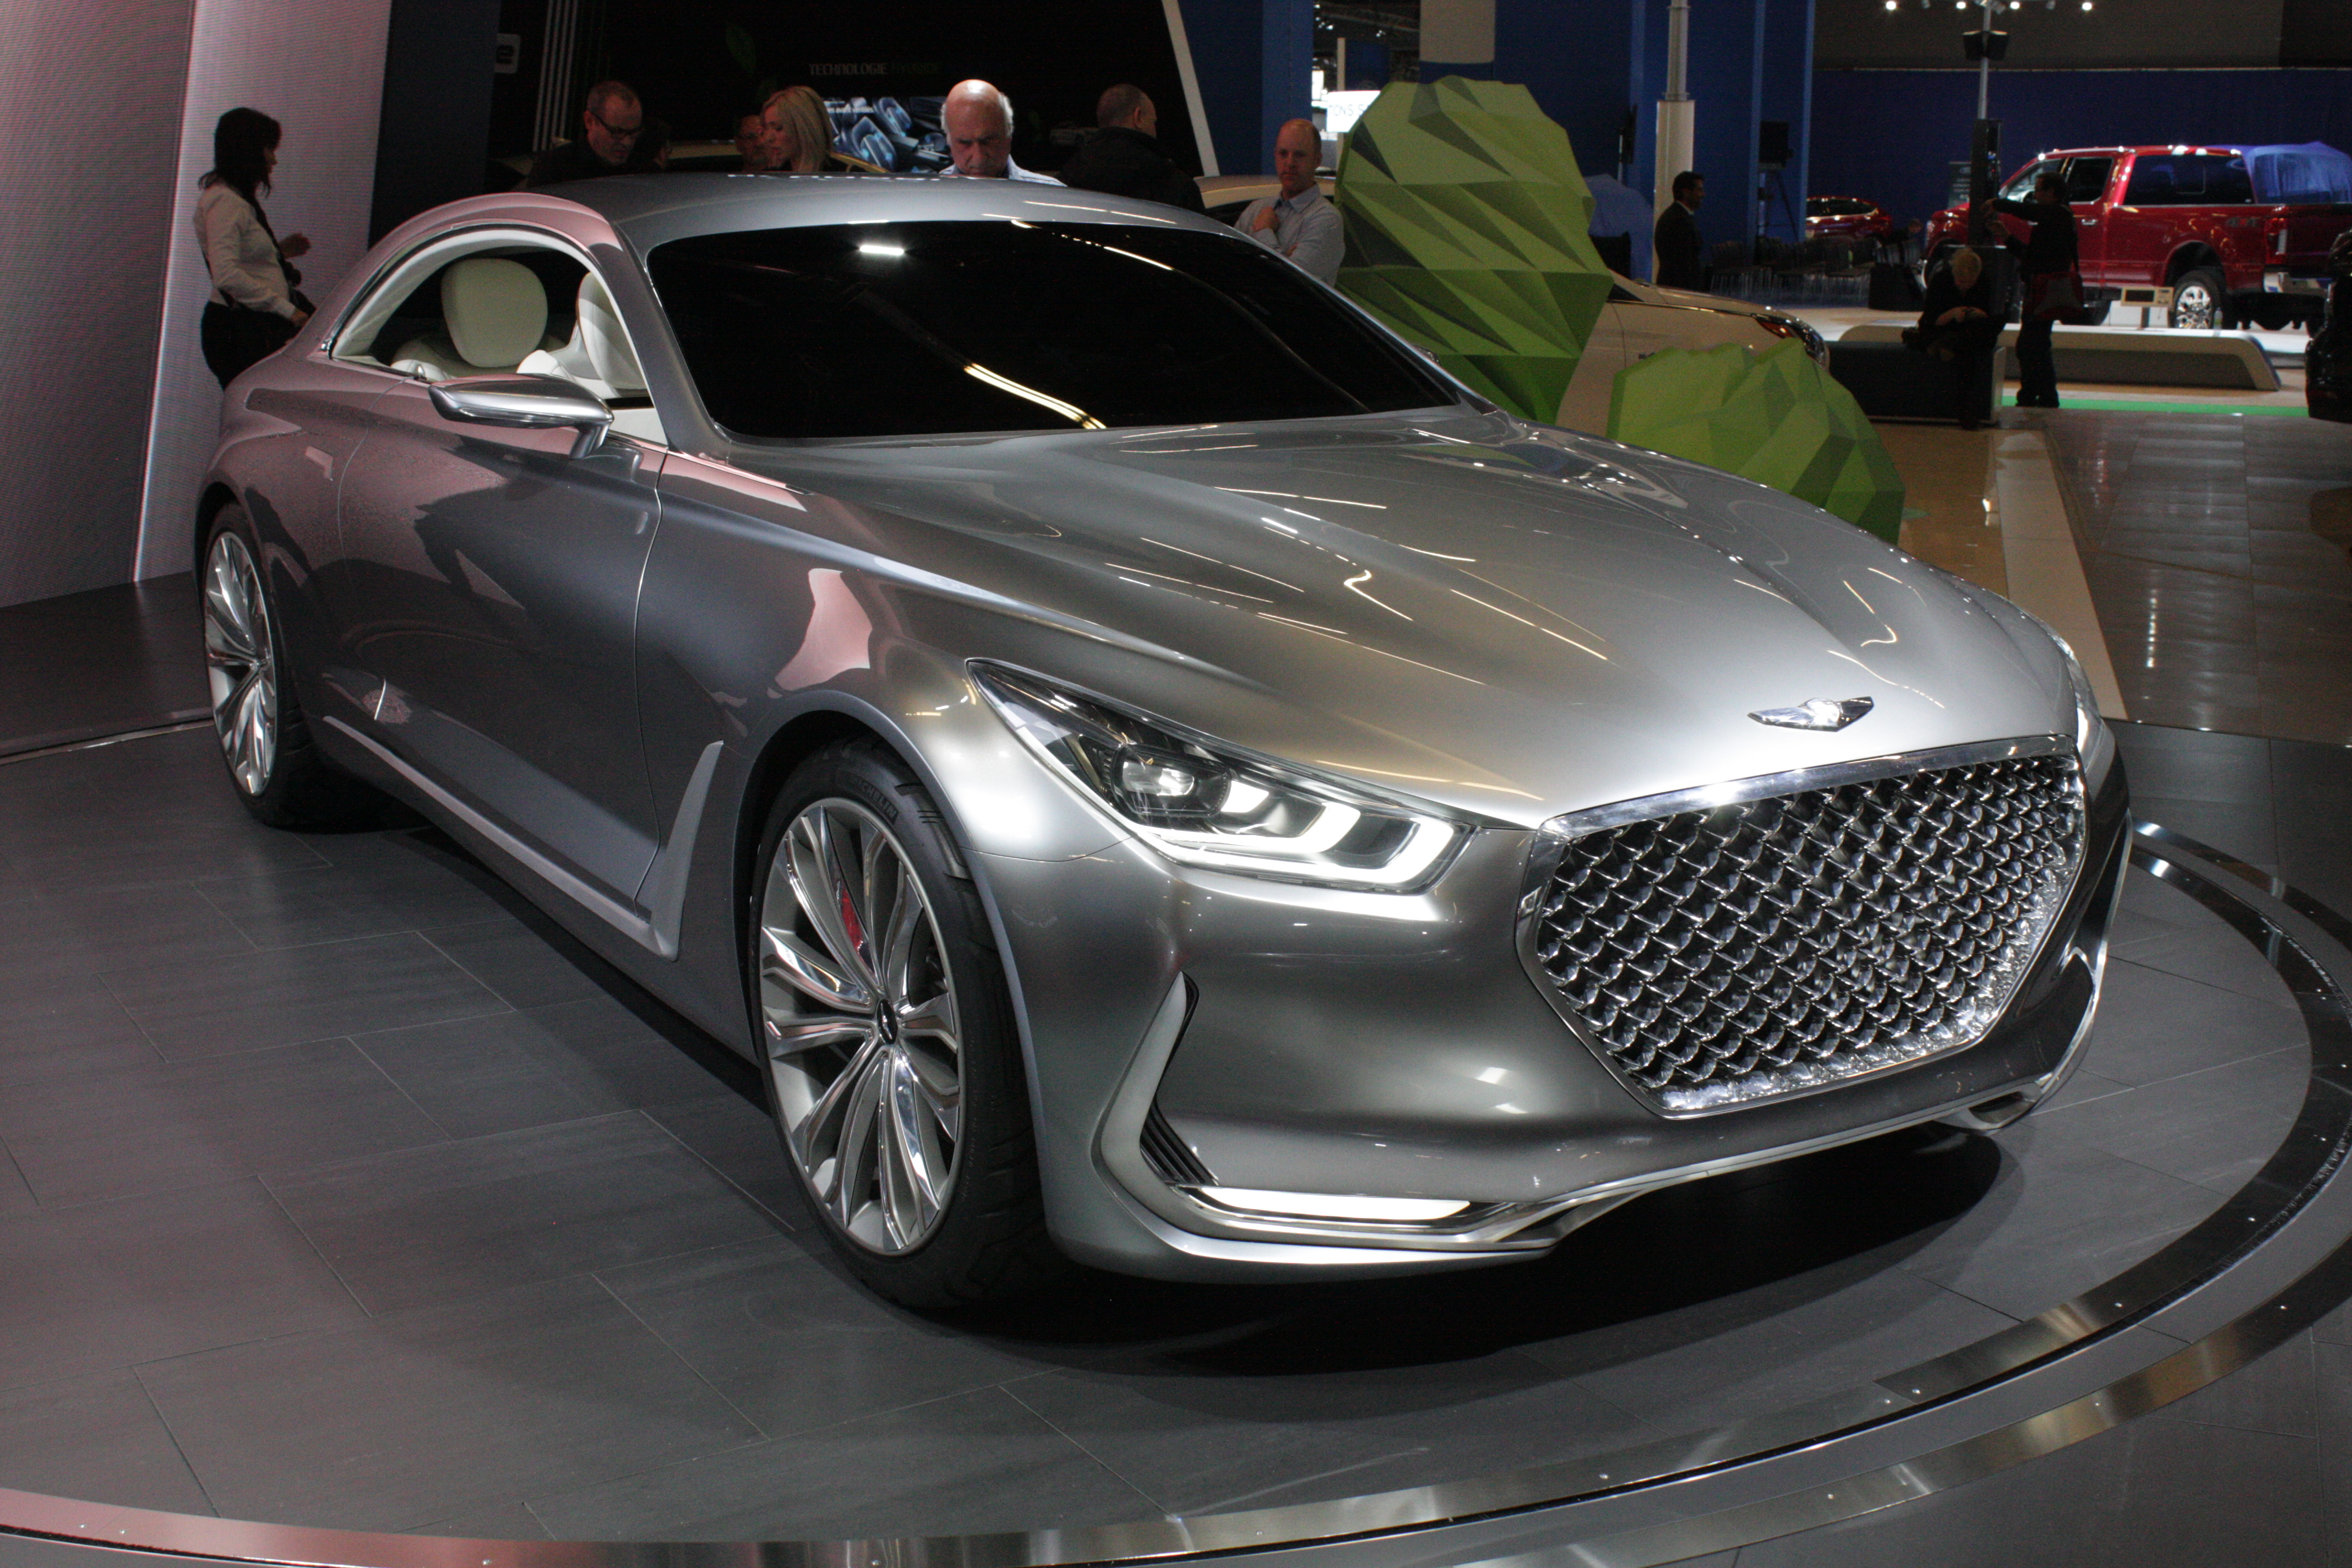 Hyundai also showed the Vision G Coupe concept, which shows what it has in mind for a future luxury coupe addition to its Genesis premium lineup.